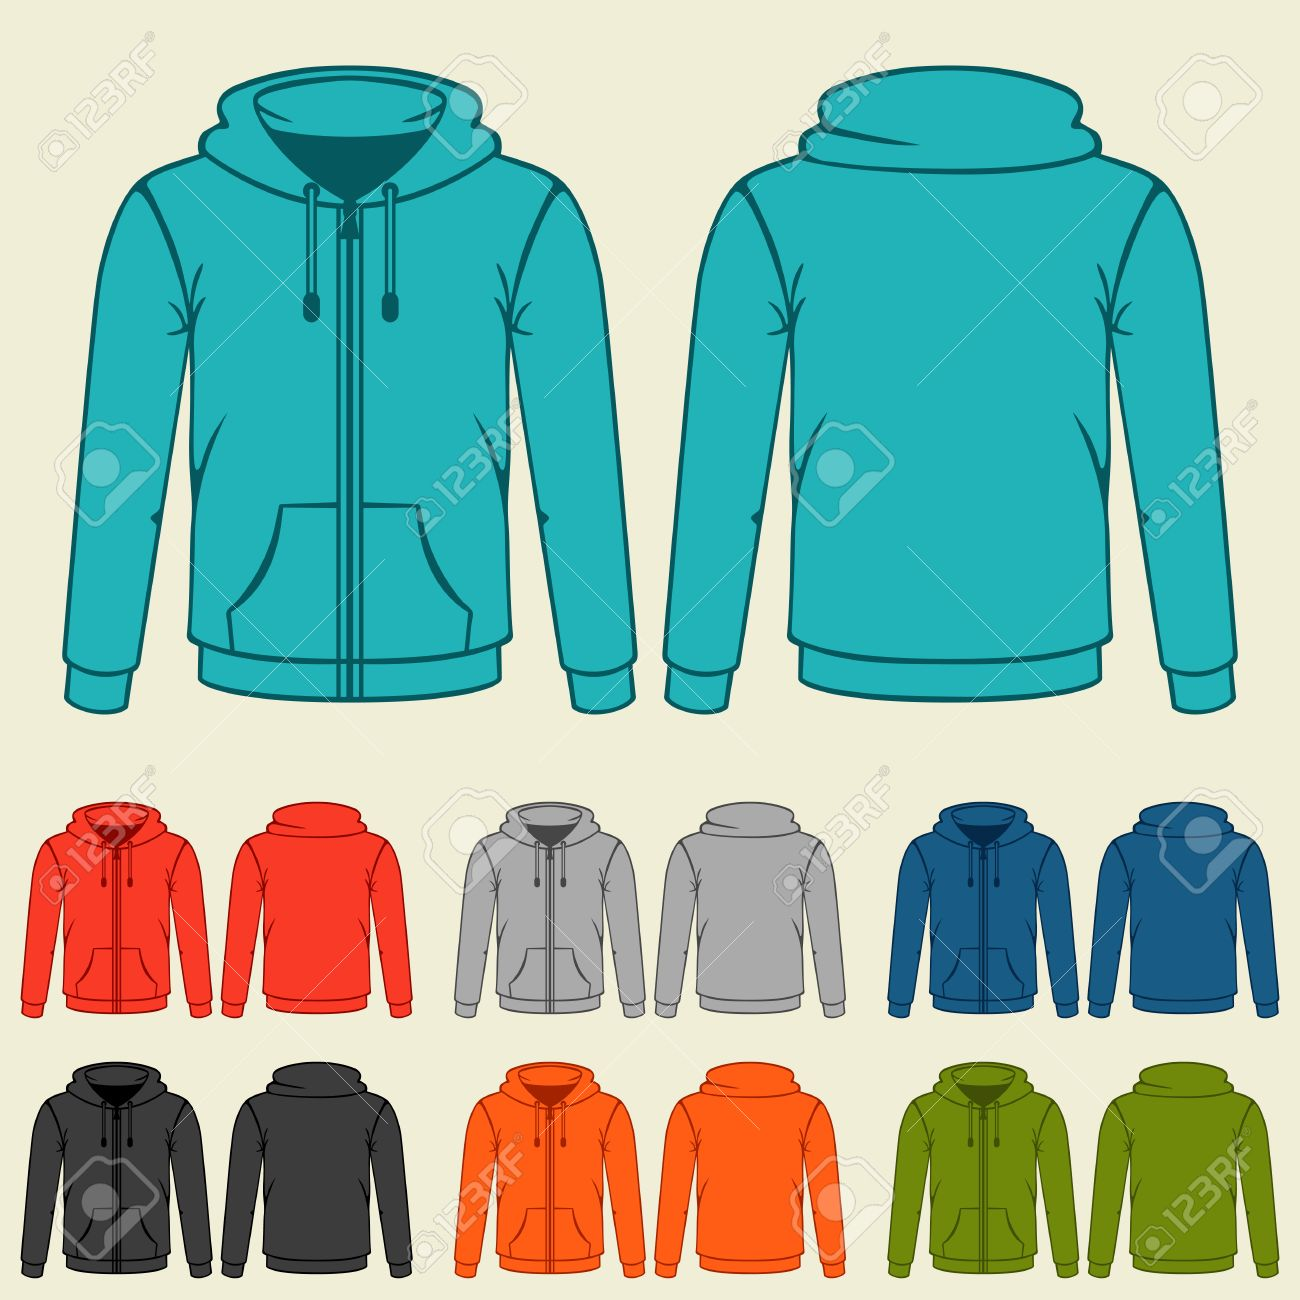 Set Of Colored Hoodies Templates For Men. Royalty Free Cliparts ...